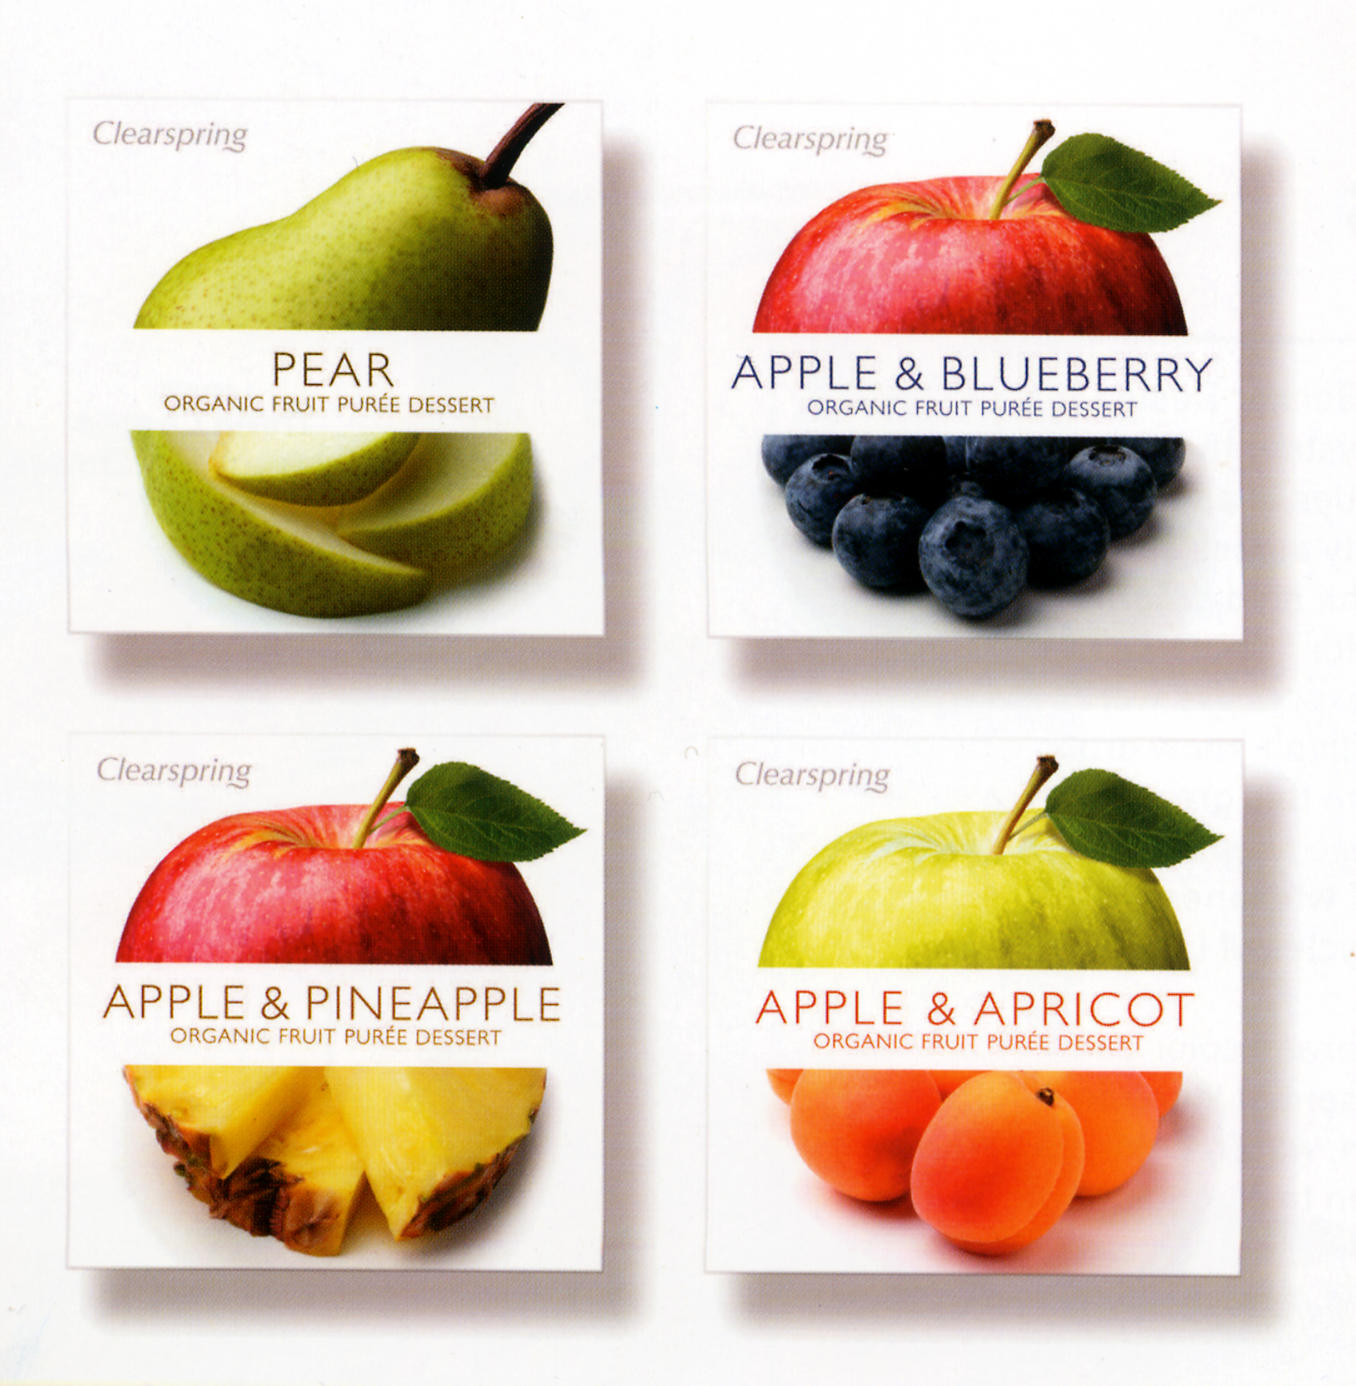 Packaging Design Archive Clearspring Organic Fruit Puree